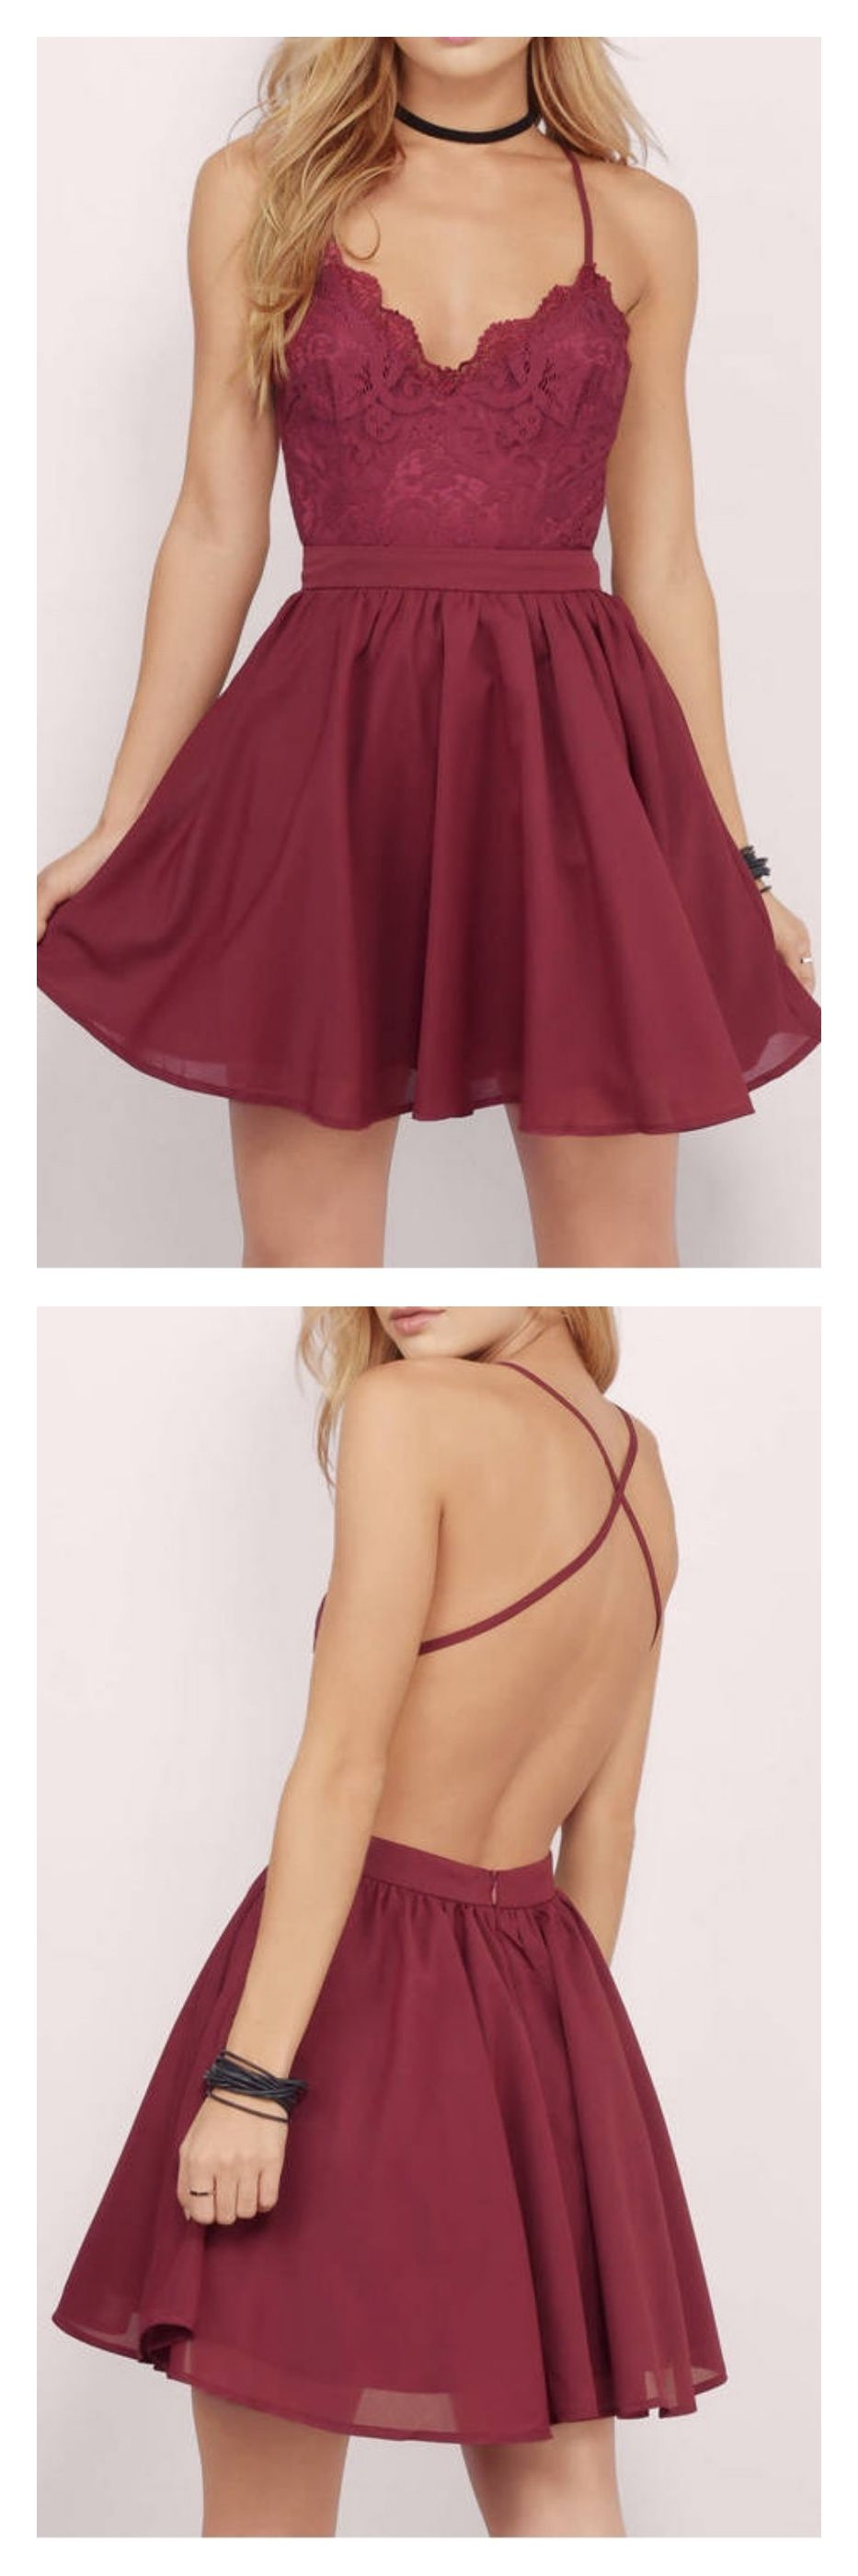 homecoming dresses 2017, backless homecoming dresses, cross back homecoming dresses, short mini homecoming dresses, burgundy homecoming dresses,lace homecoming dresses, cute graduation dresses, cocktail dresses, party dresses #homecomingdresses #SIMIBridal #backlesscocktaildress